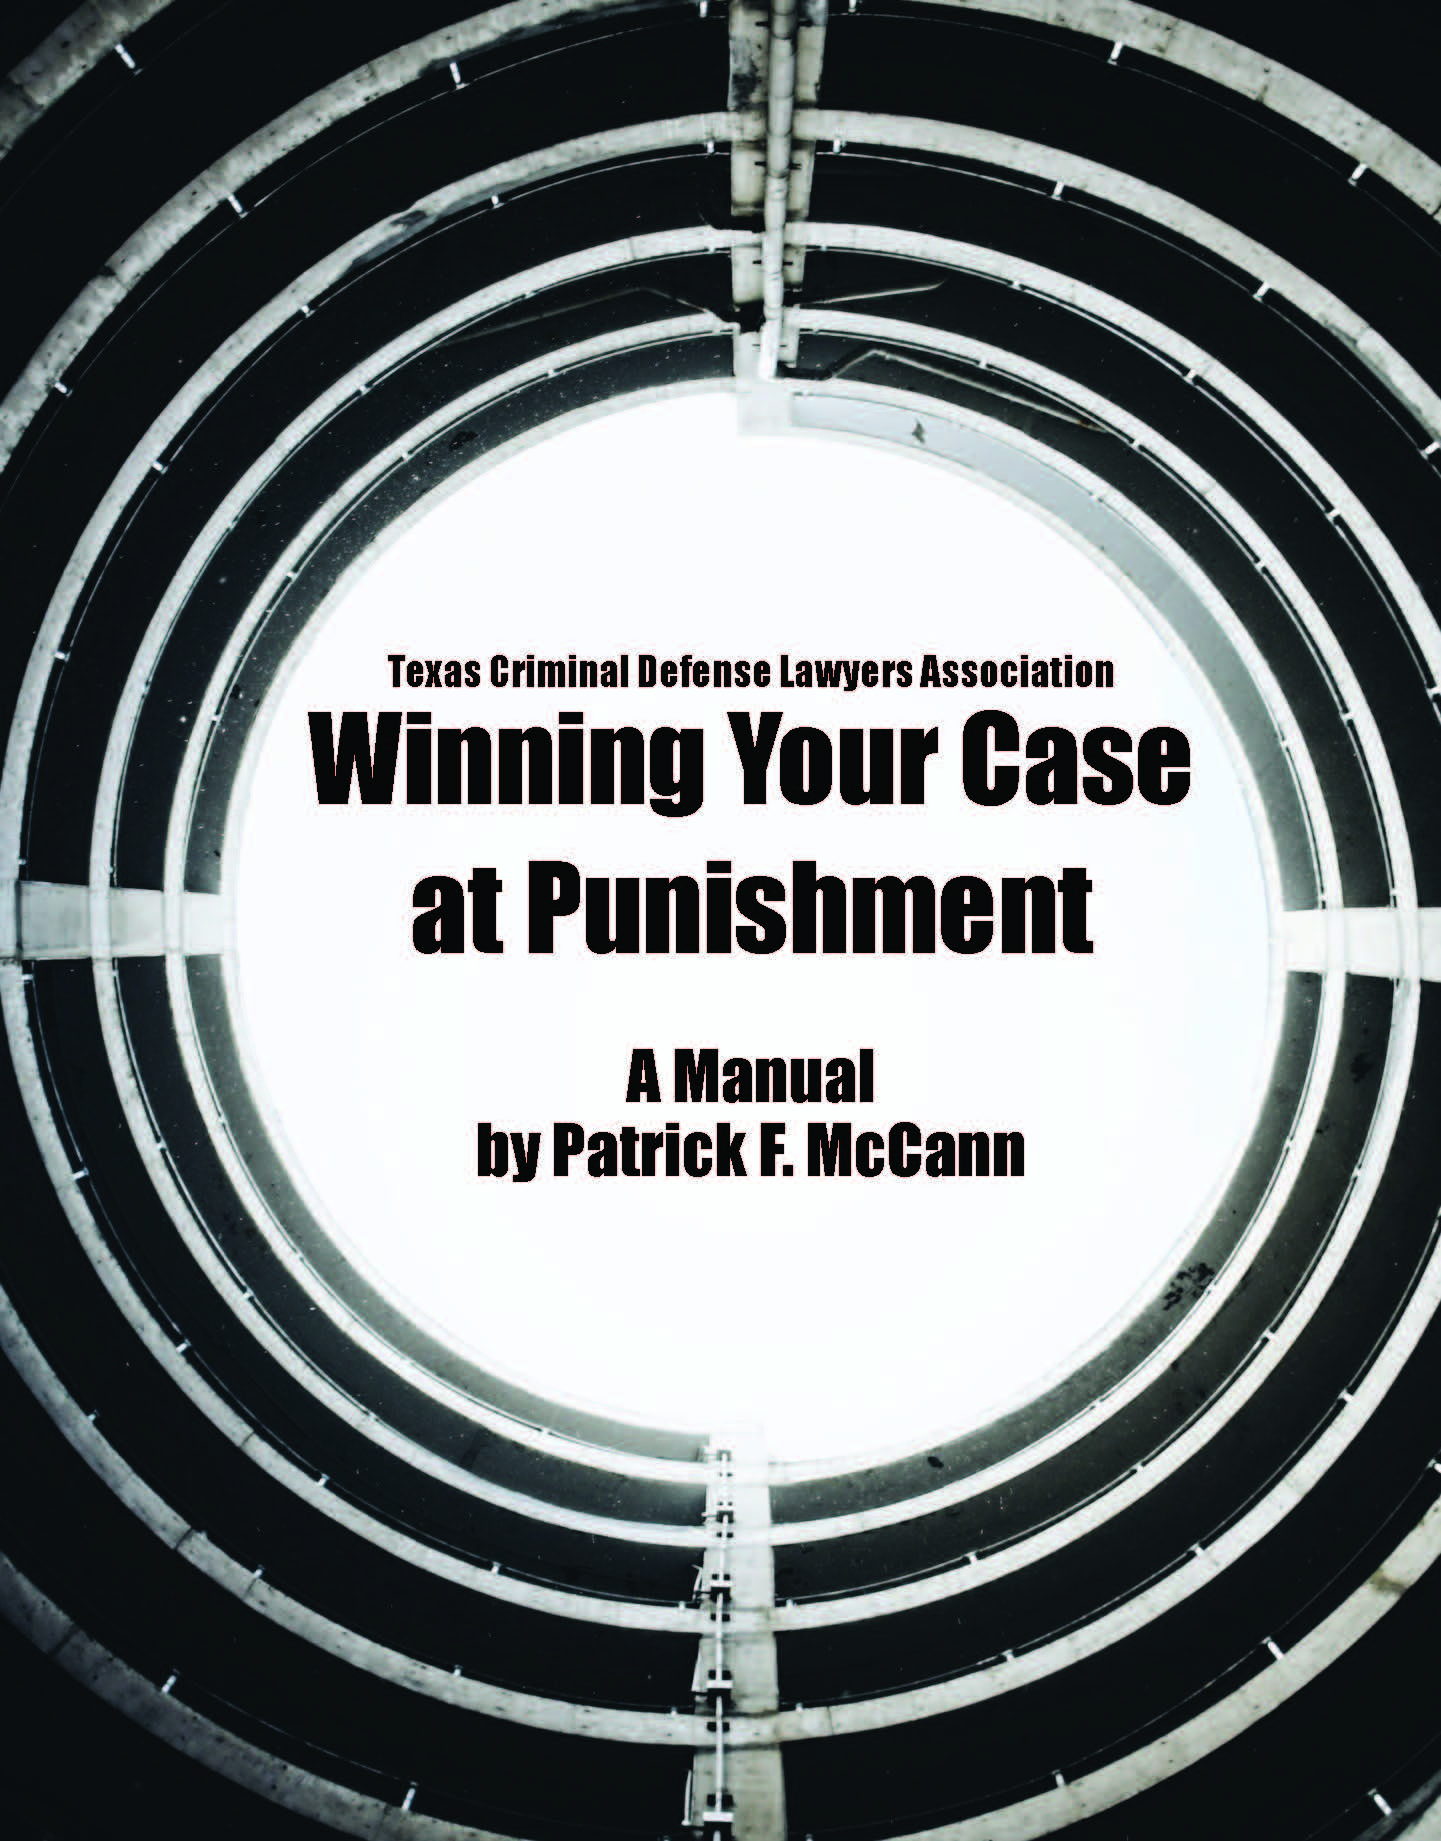 Winning Your Case At Punishment: The Punishment Manual 2020